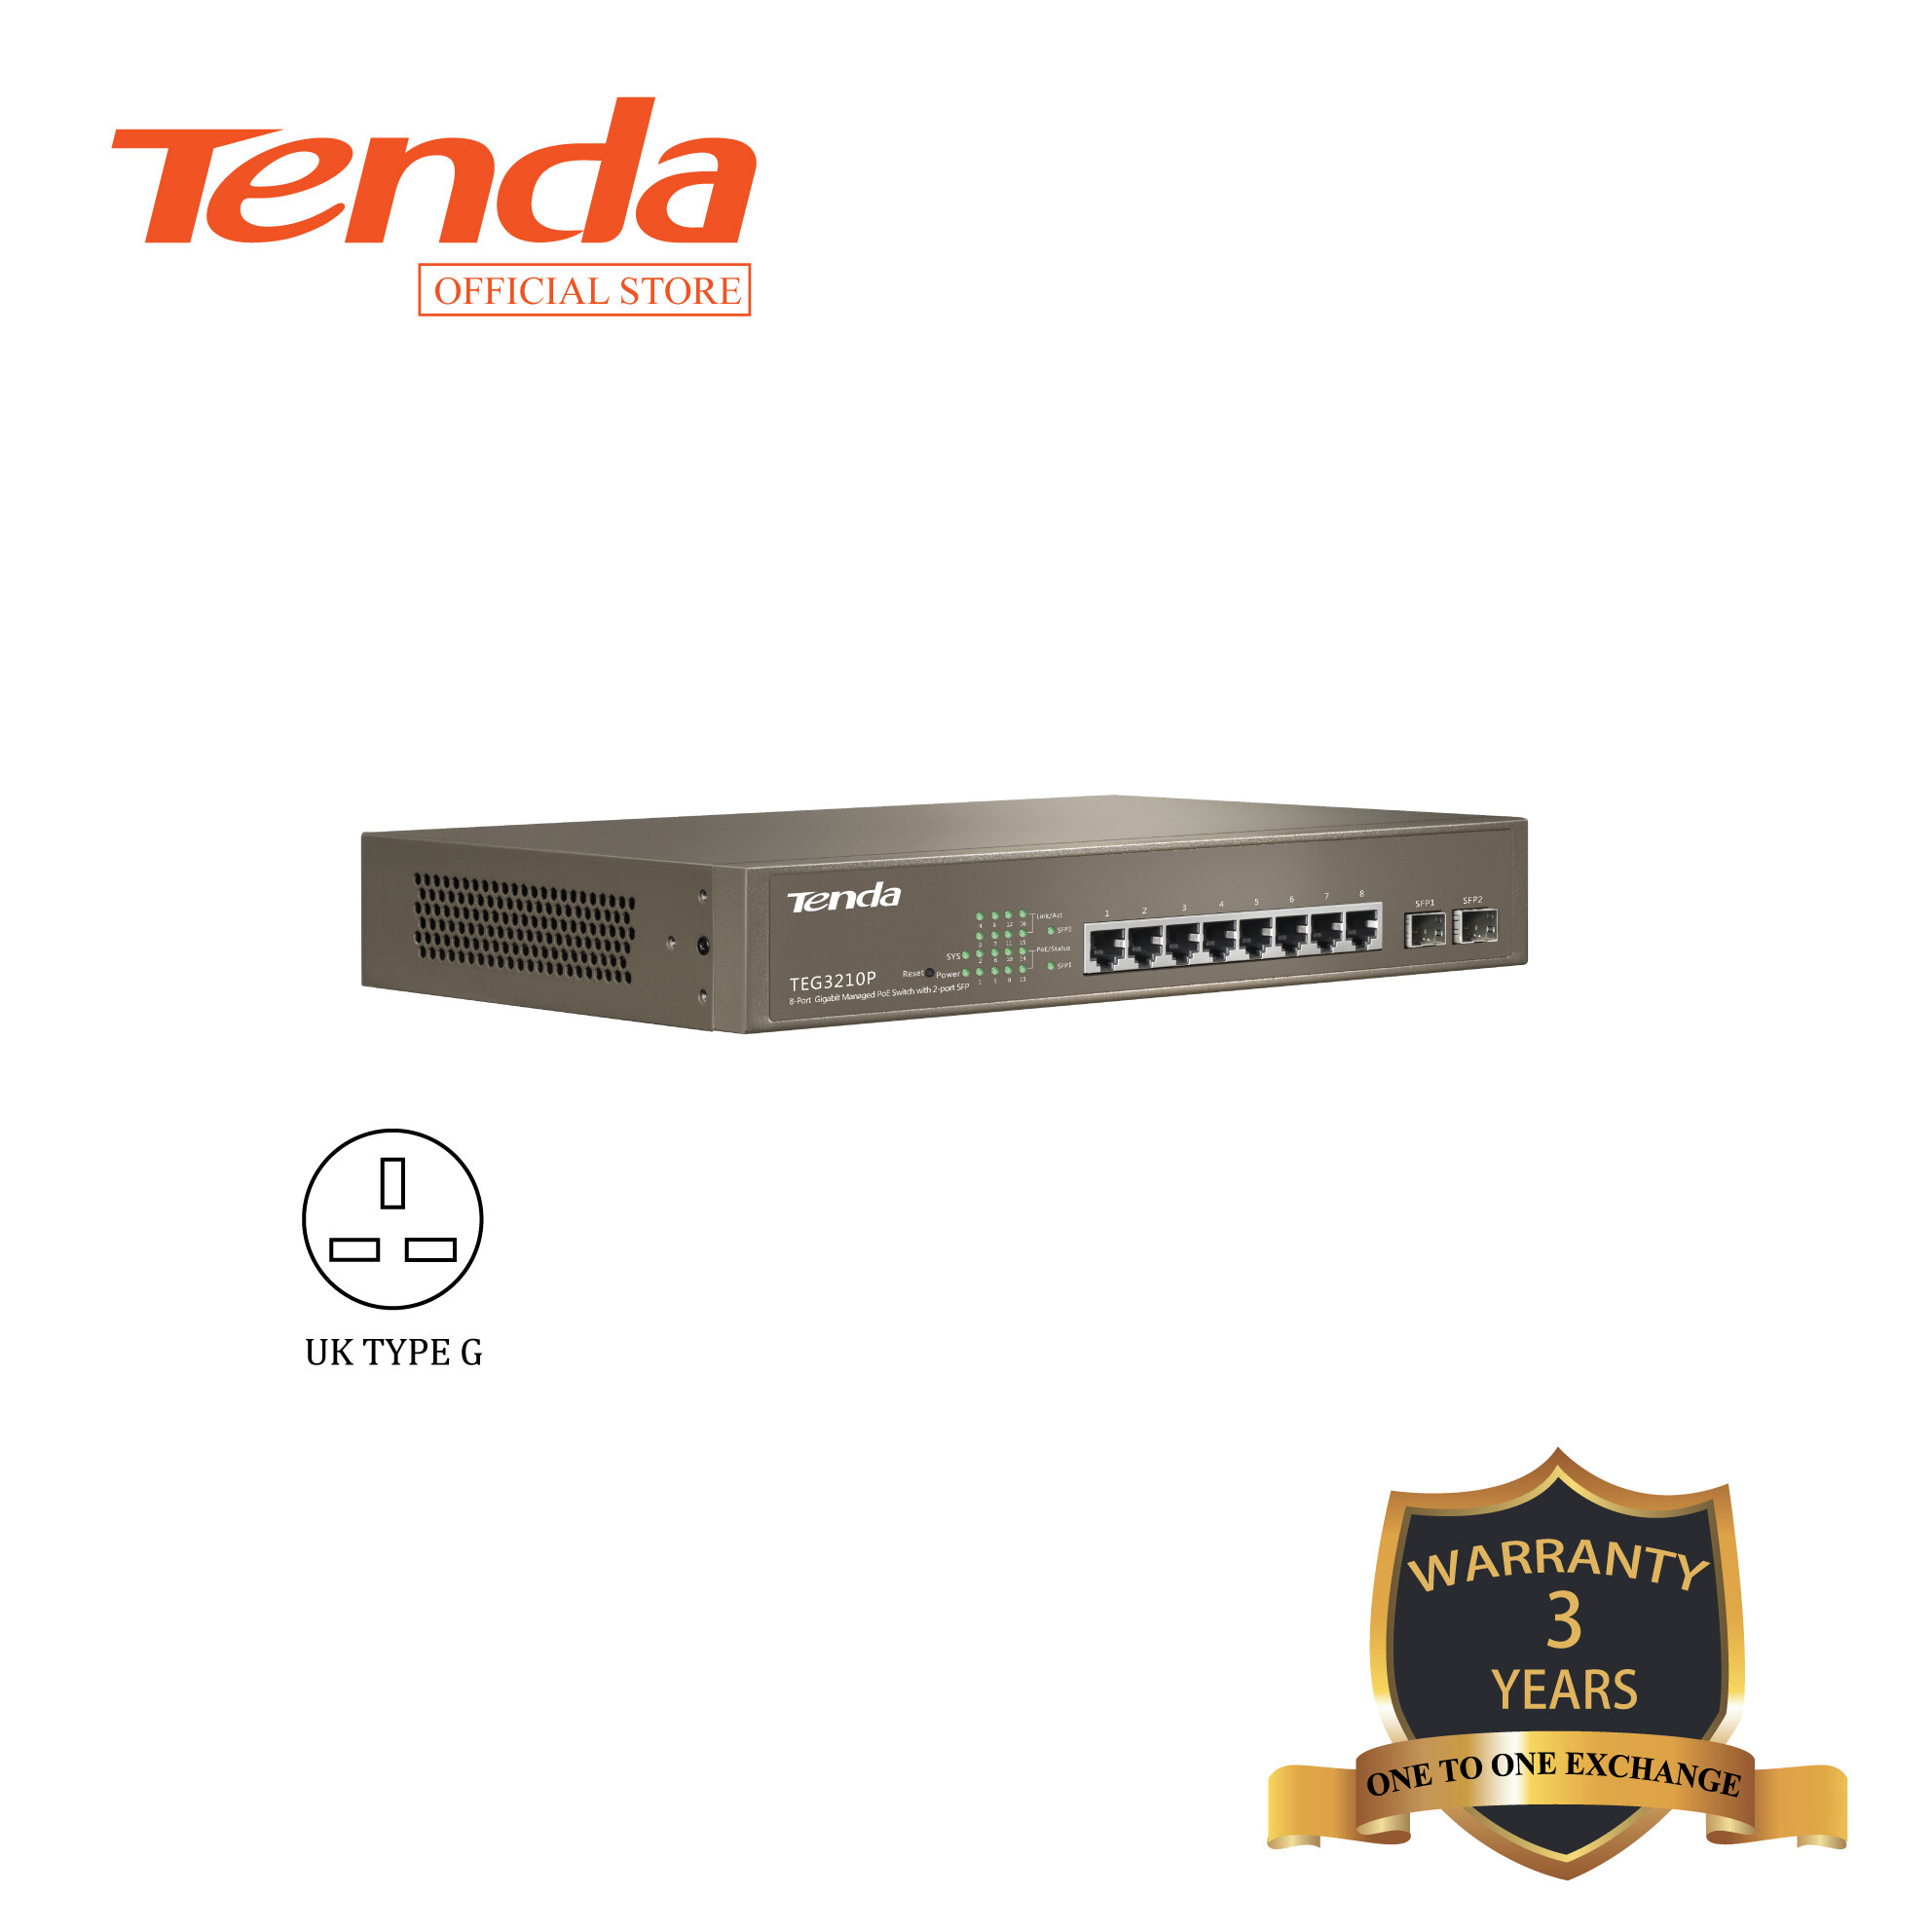 Tenda TEG3210P 8G+2SFP Managed PoE Switch